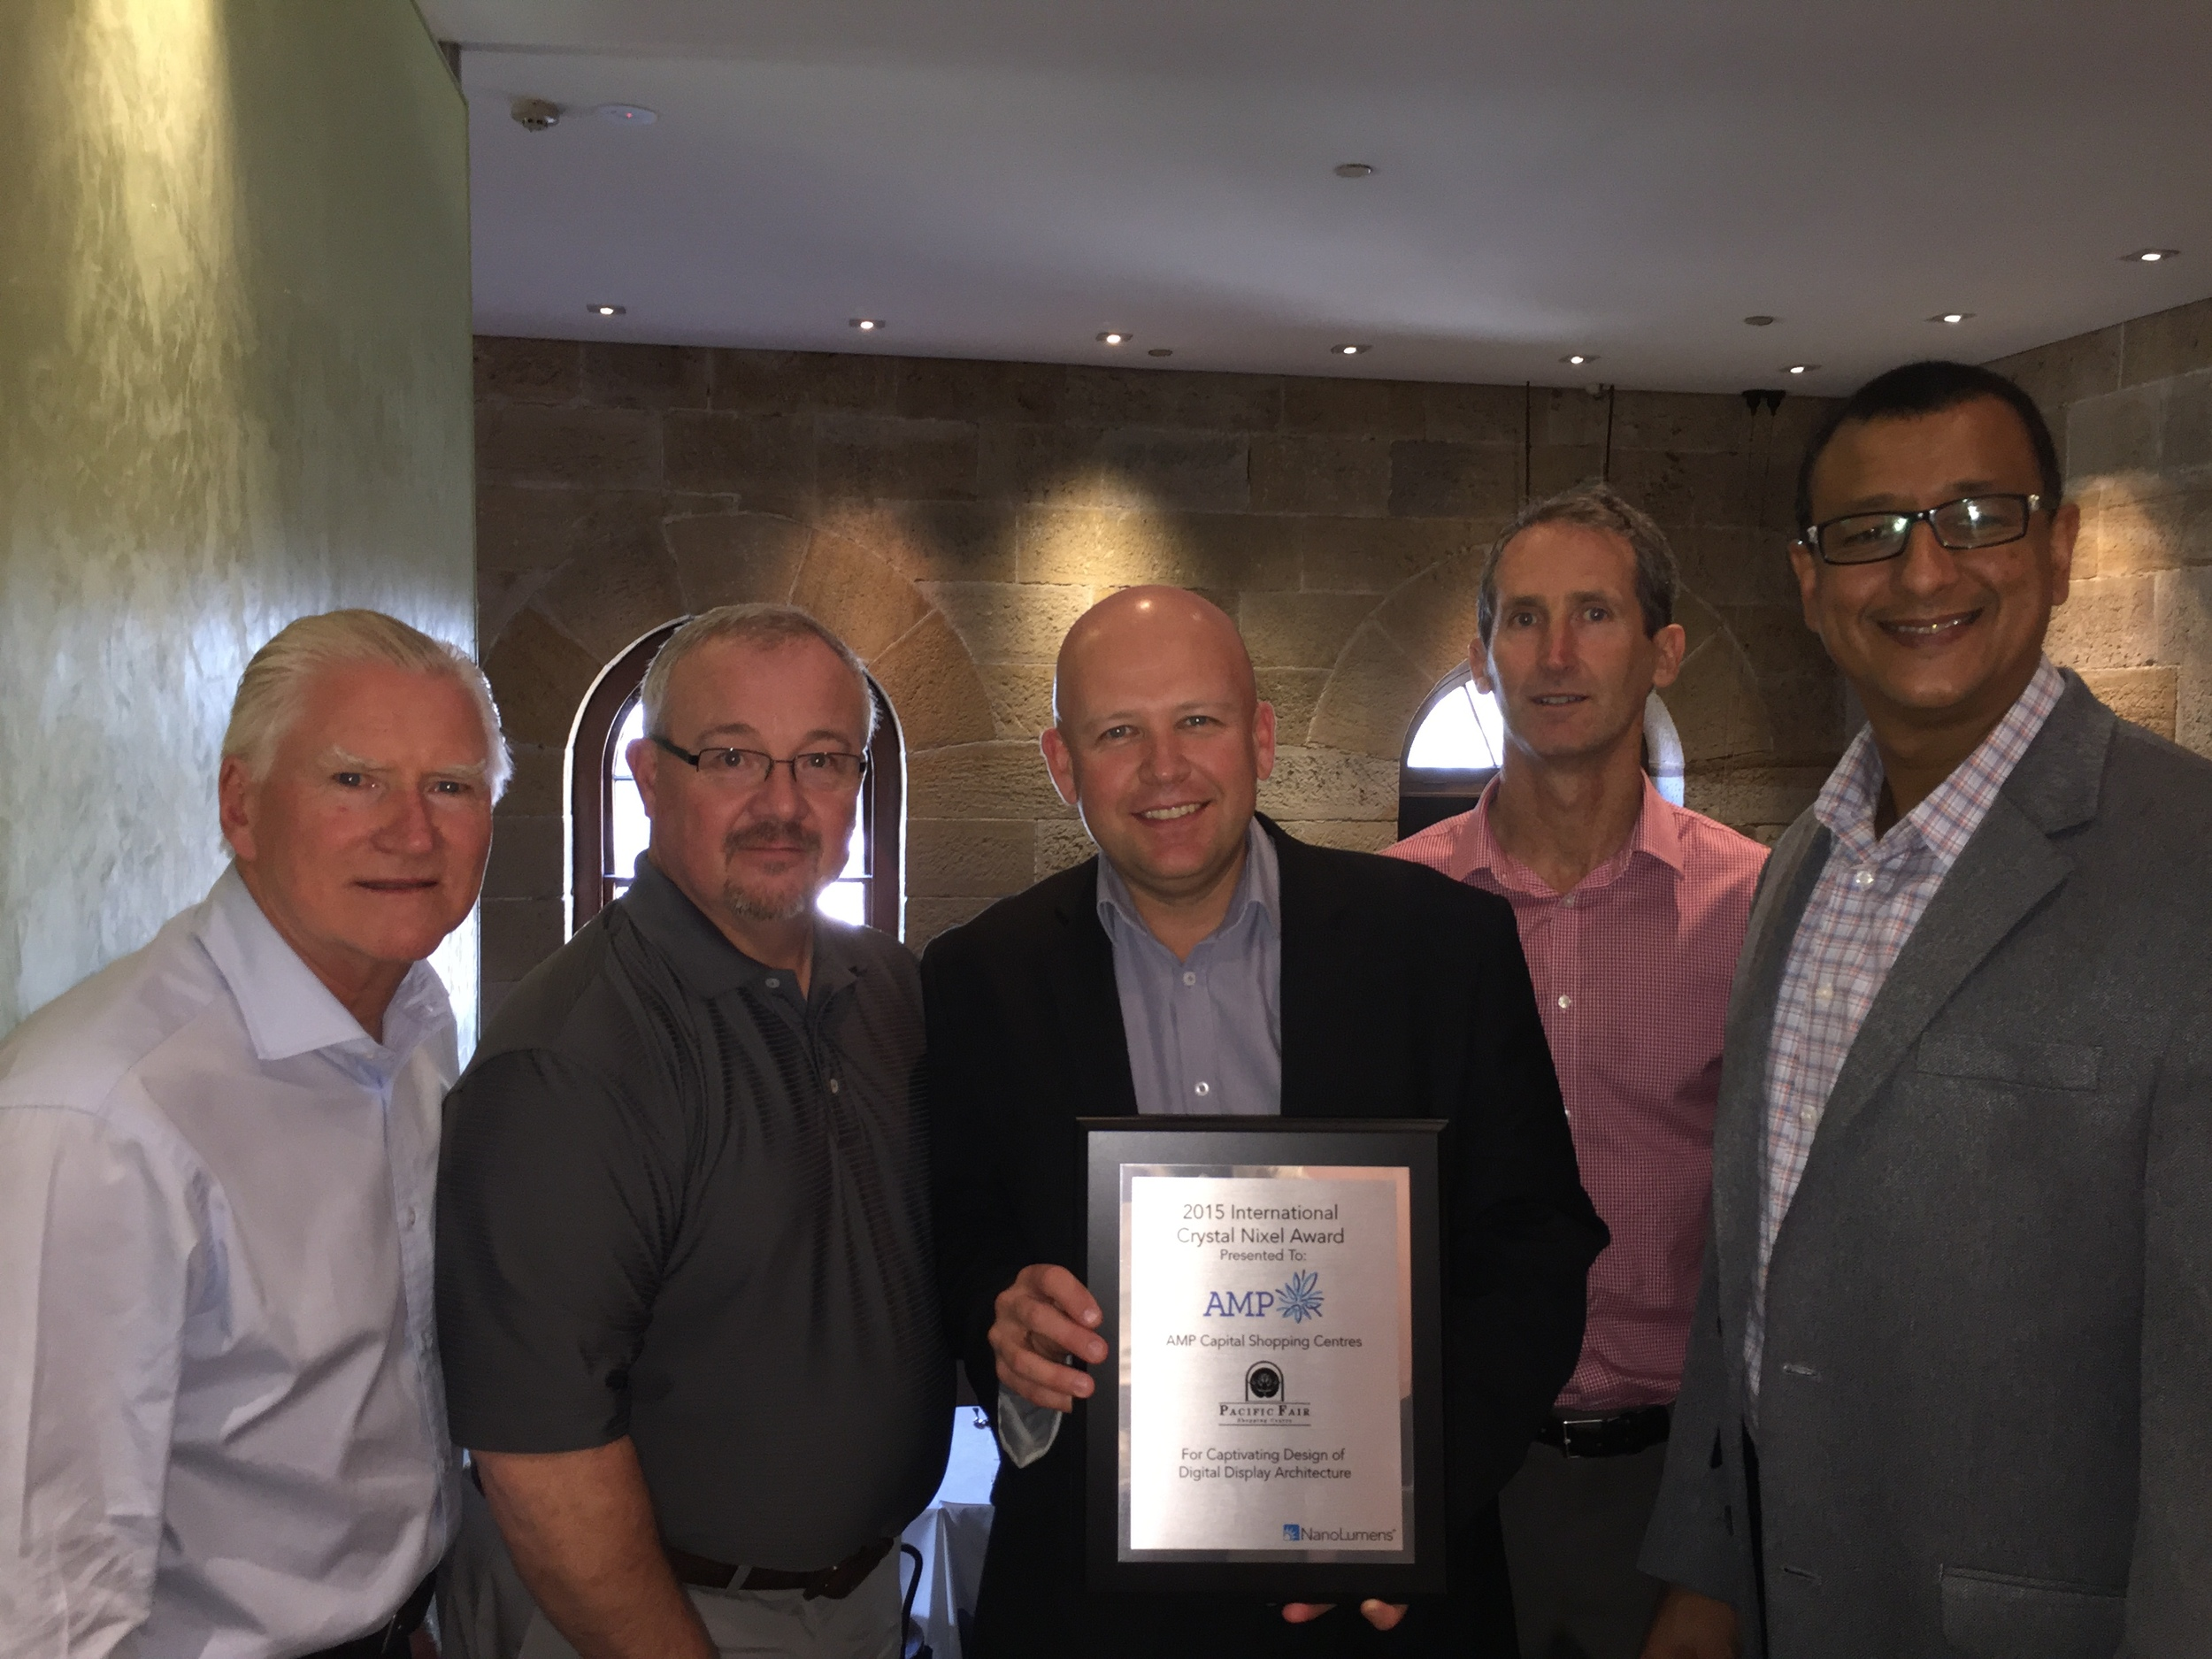 NanoLumens Vice President of Strategic Accounts Almir DeCarvalho (right) presents AMP Capital representatives with the 2015 International Crystal Nixel Award.